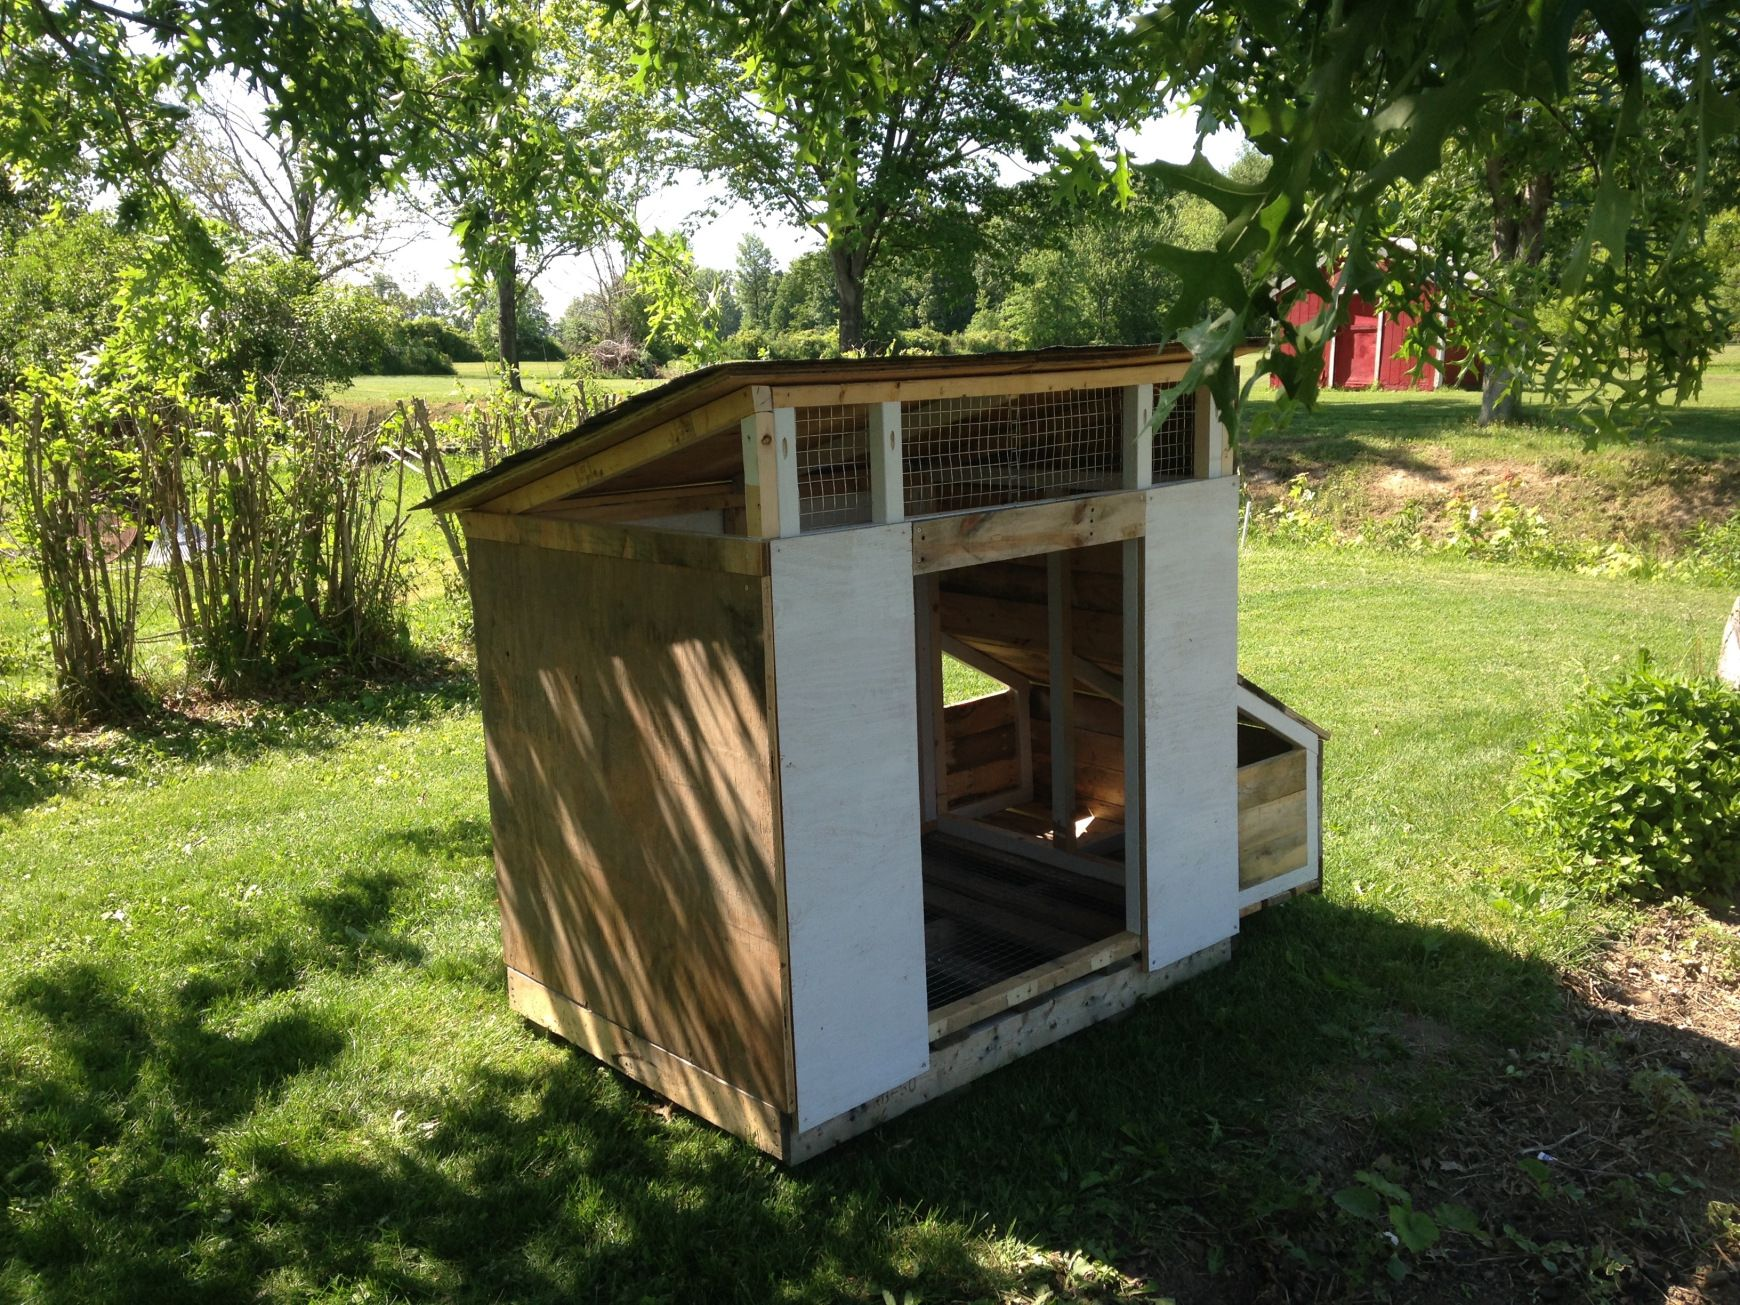 Diy duck house made from scrap wood our duck journey